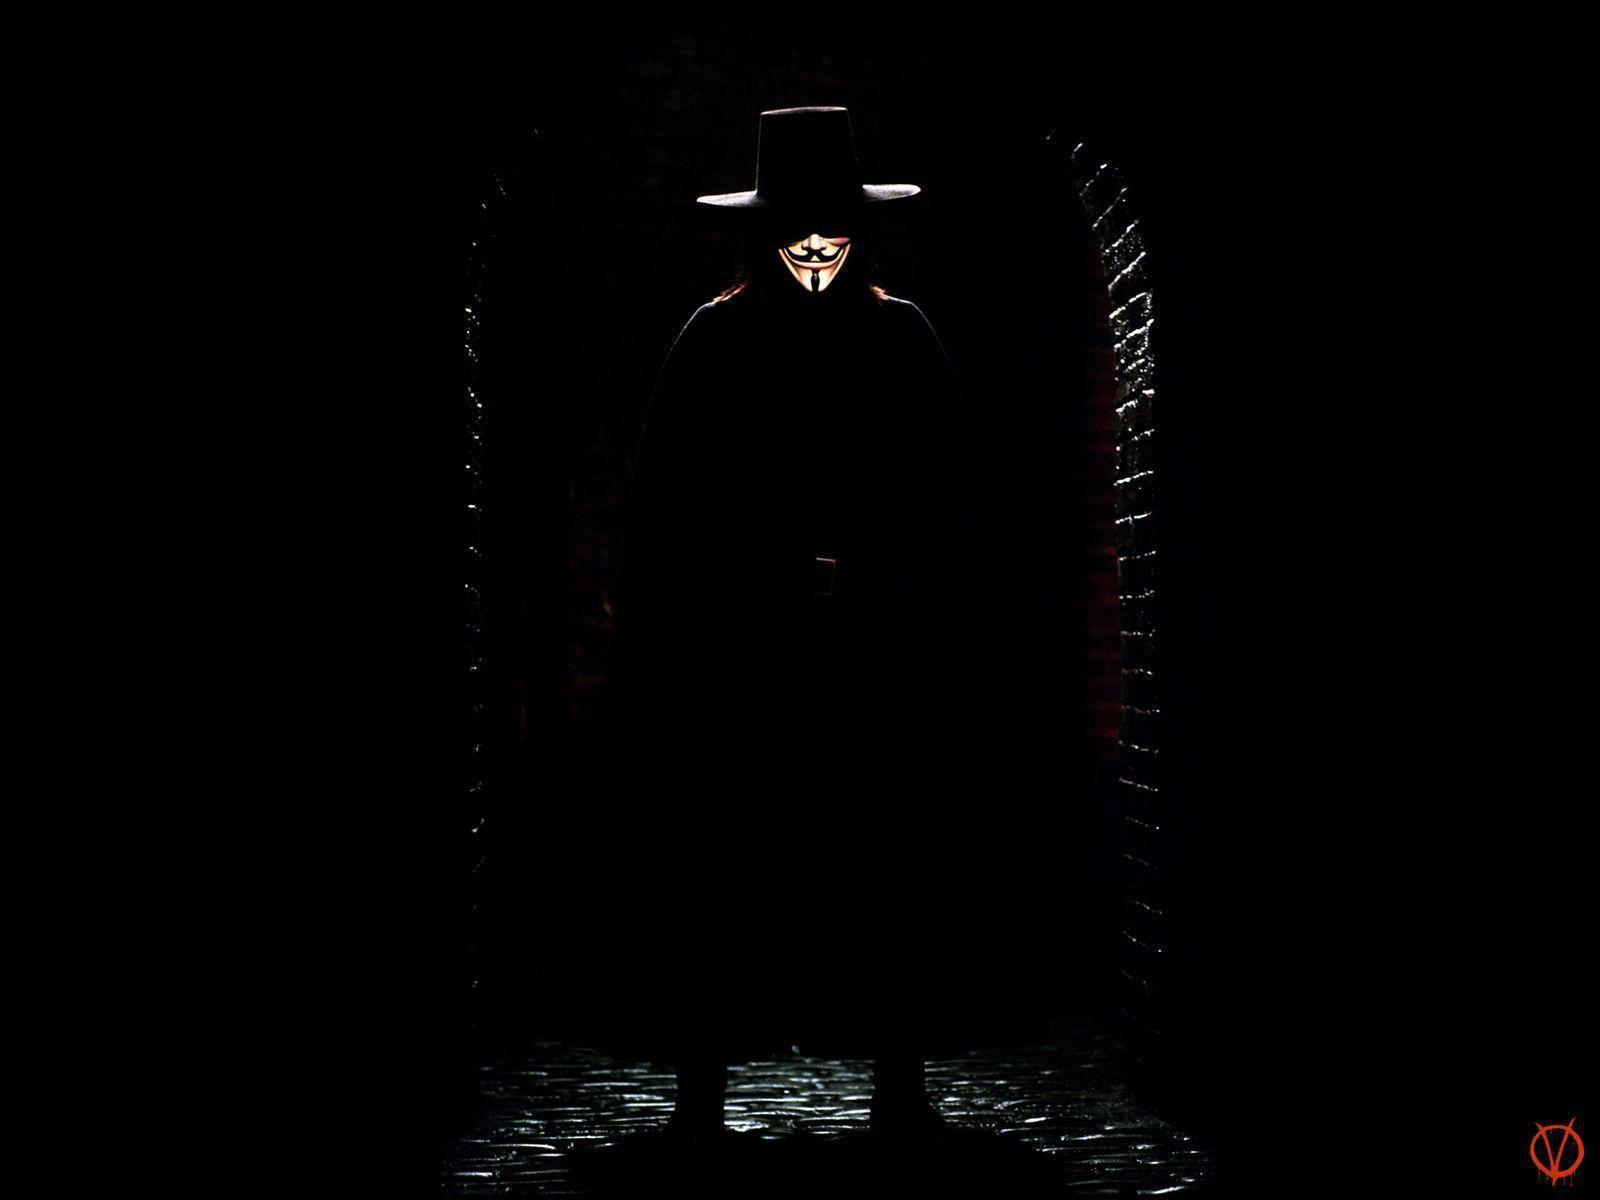 for Vendetta Wallpapers | HD Wallpapers Base